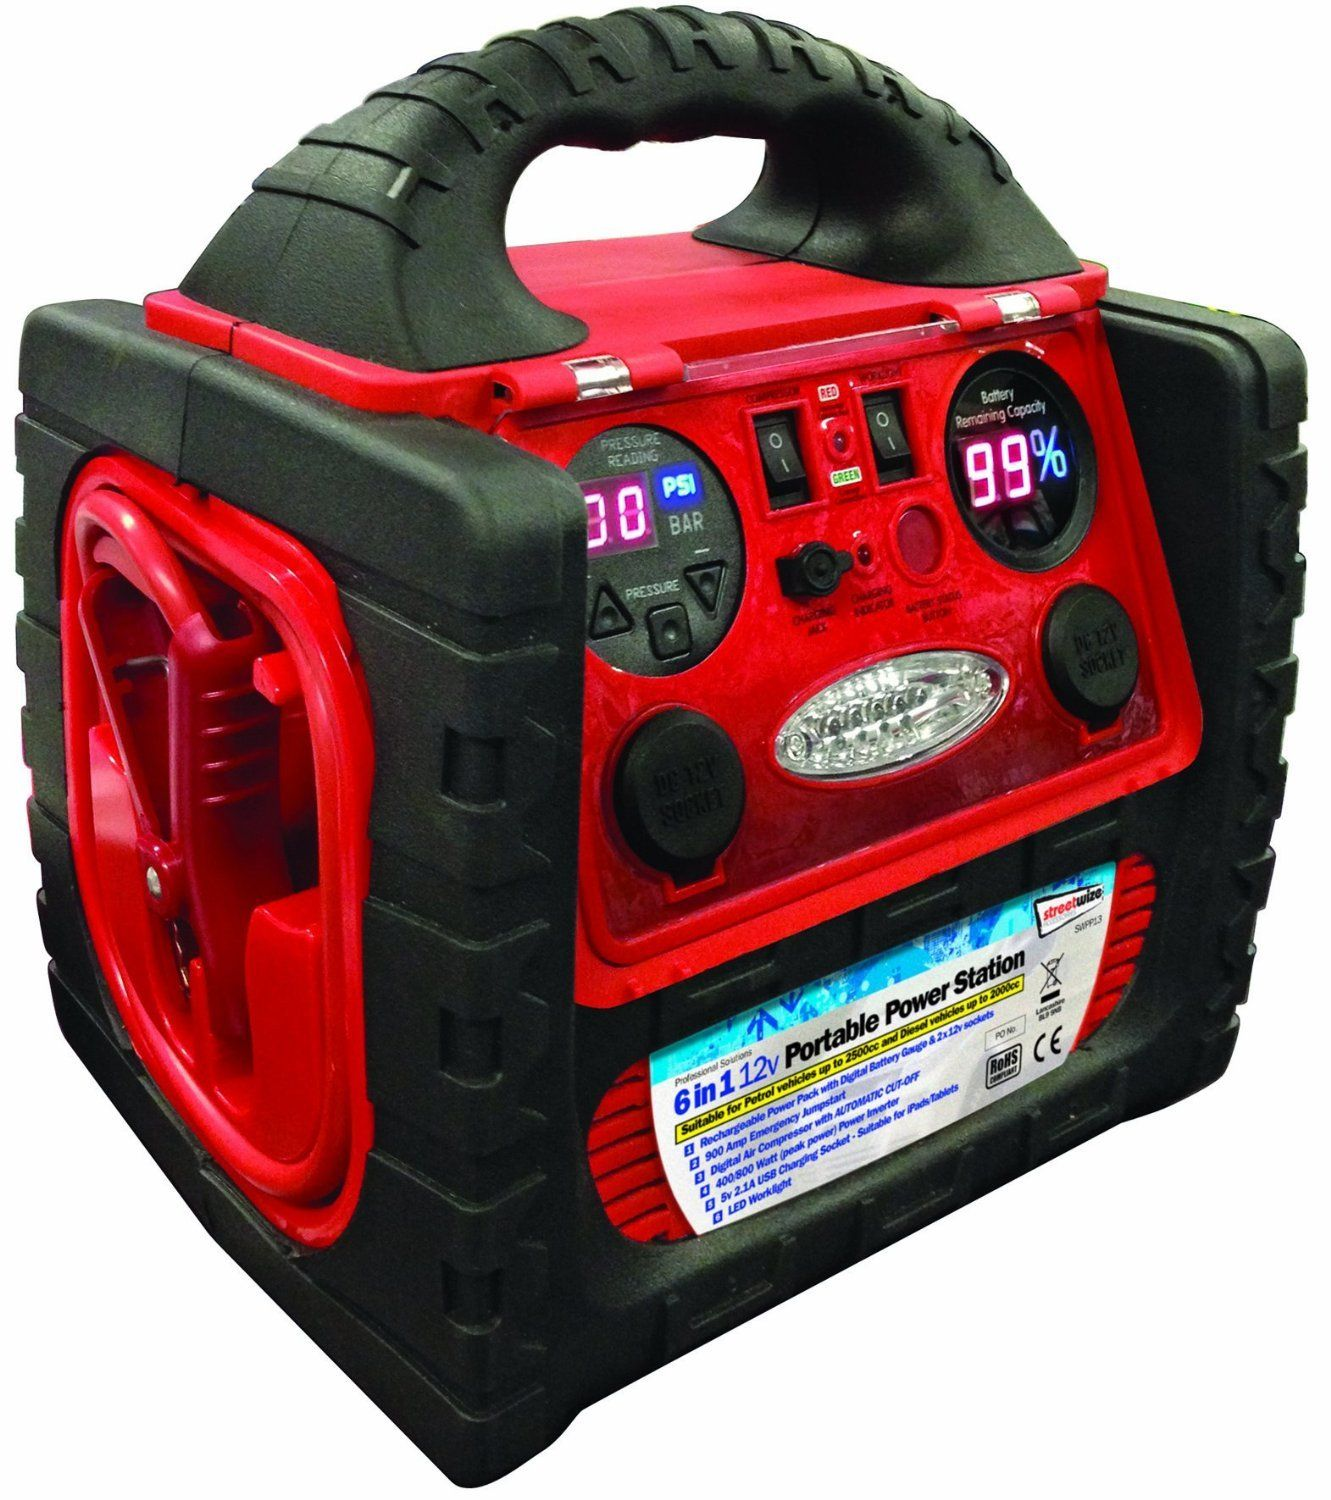 powerstation jump starter and tire inflator manual